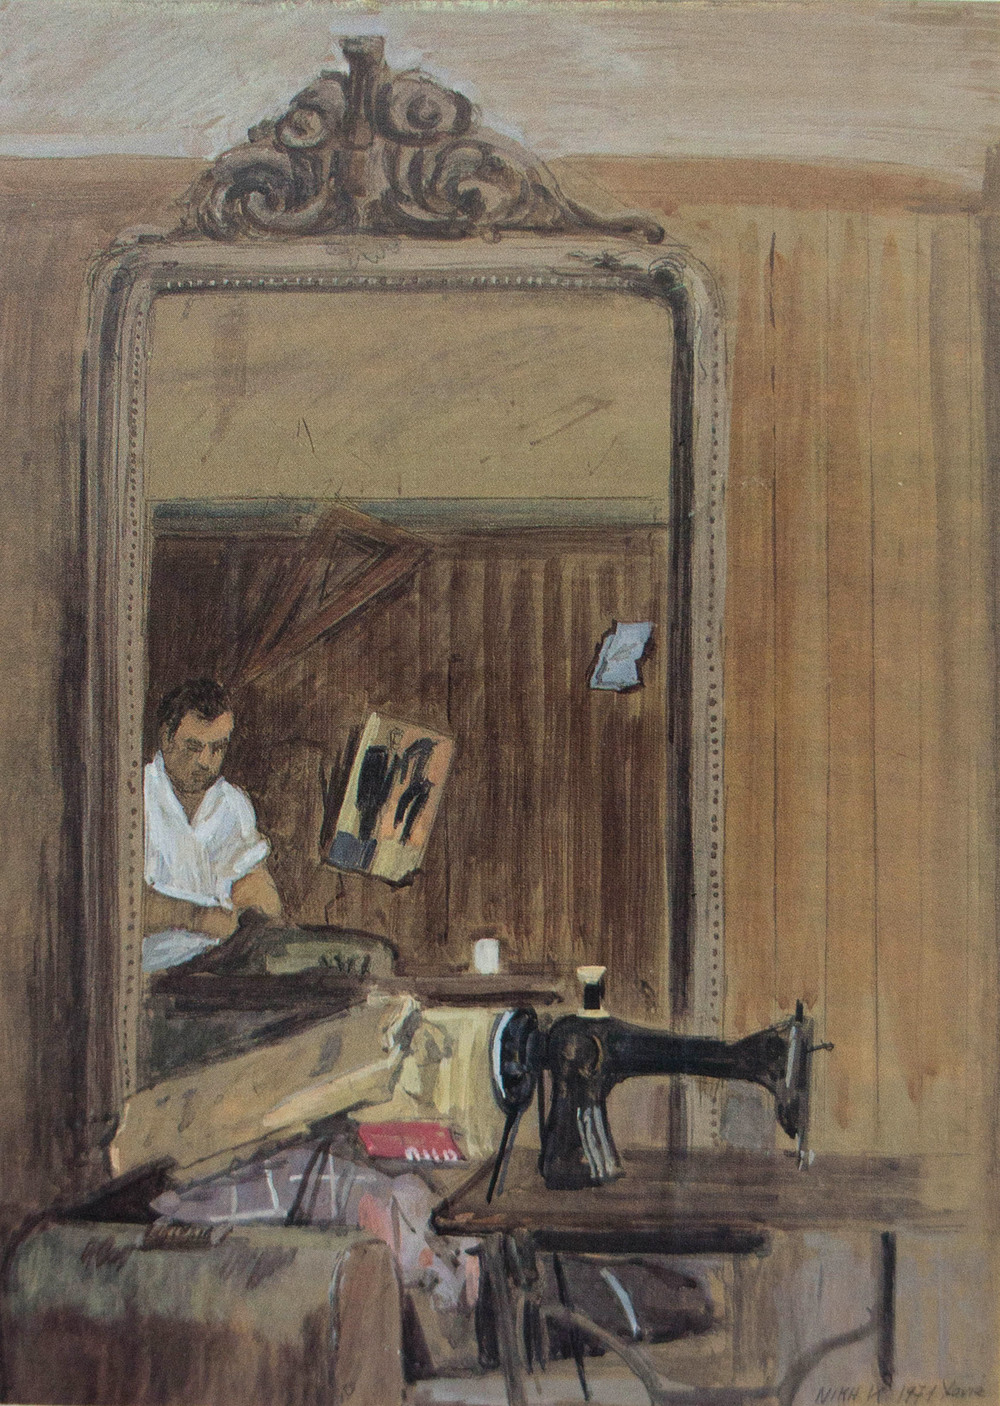 niki karagatsi: tailor shop, chania